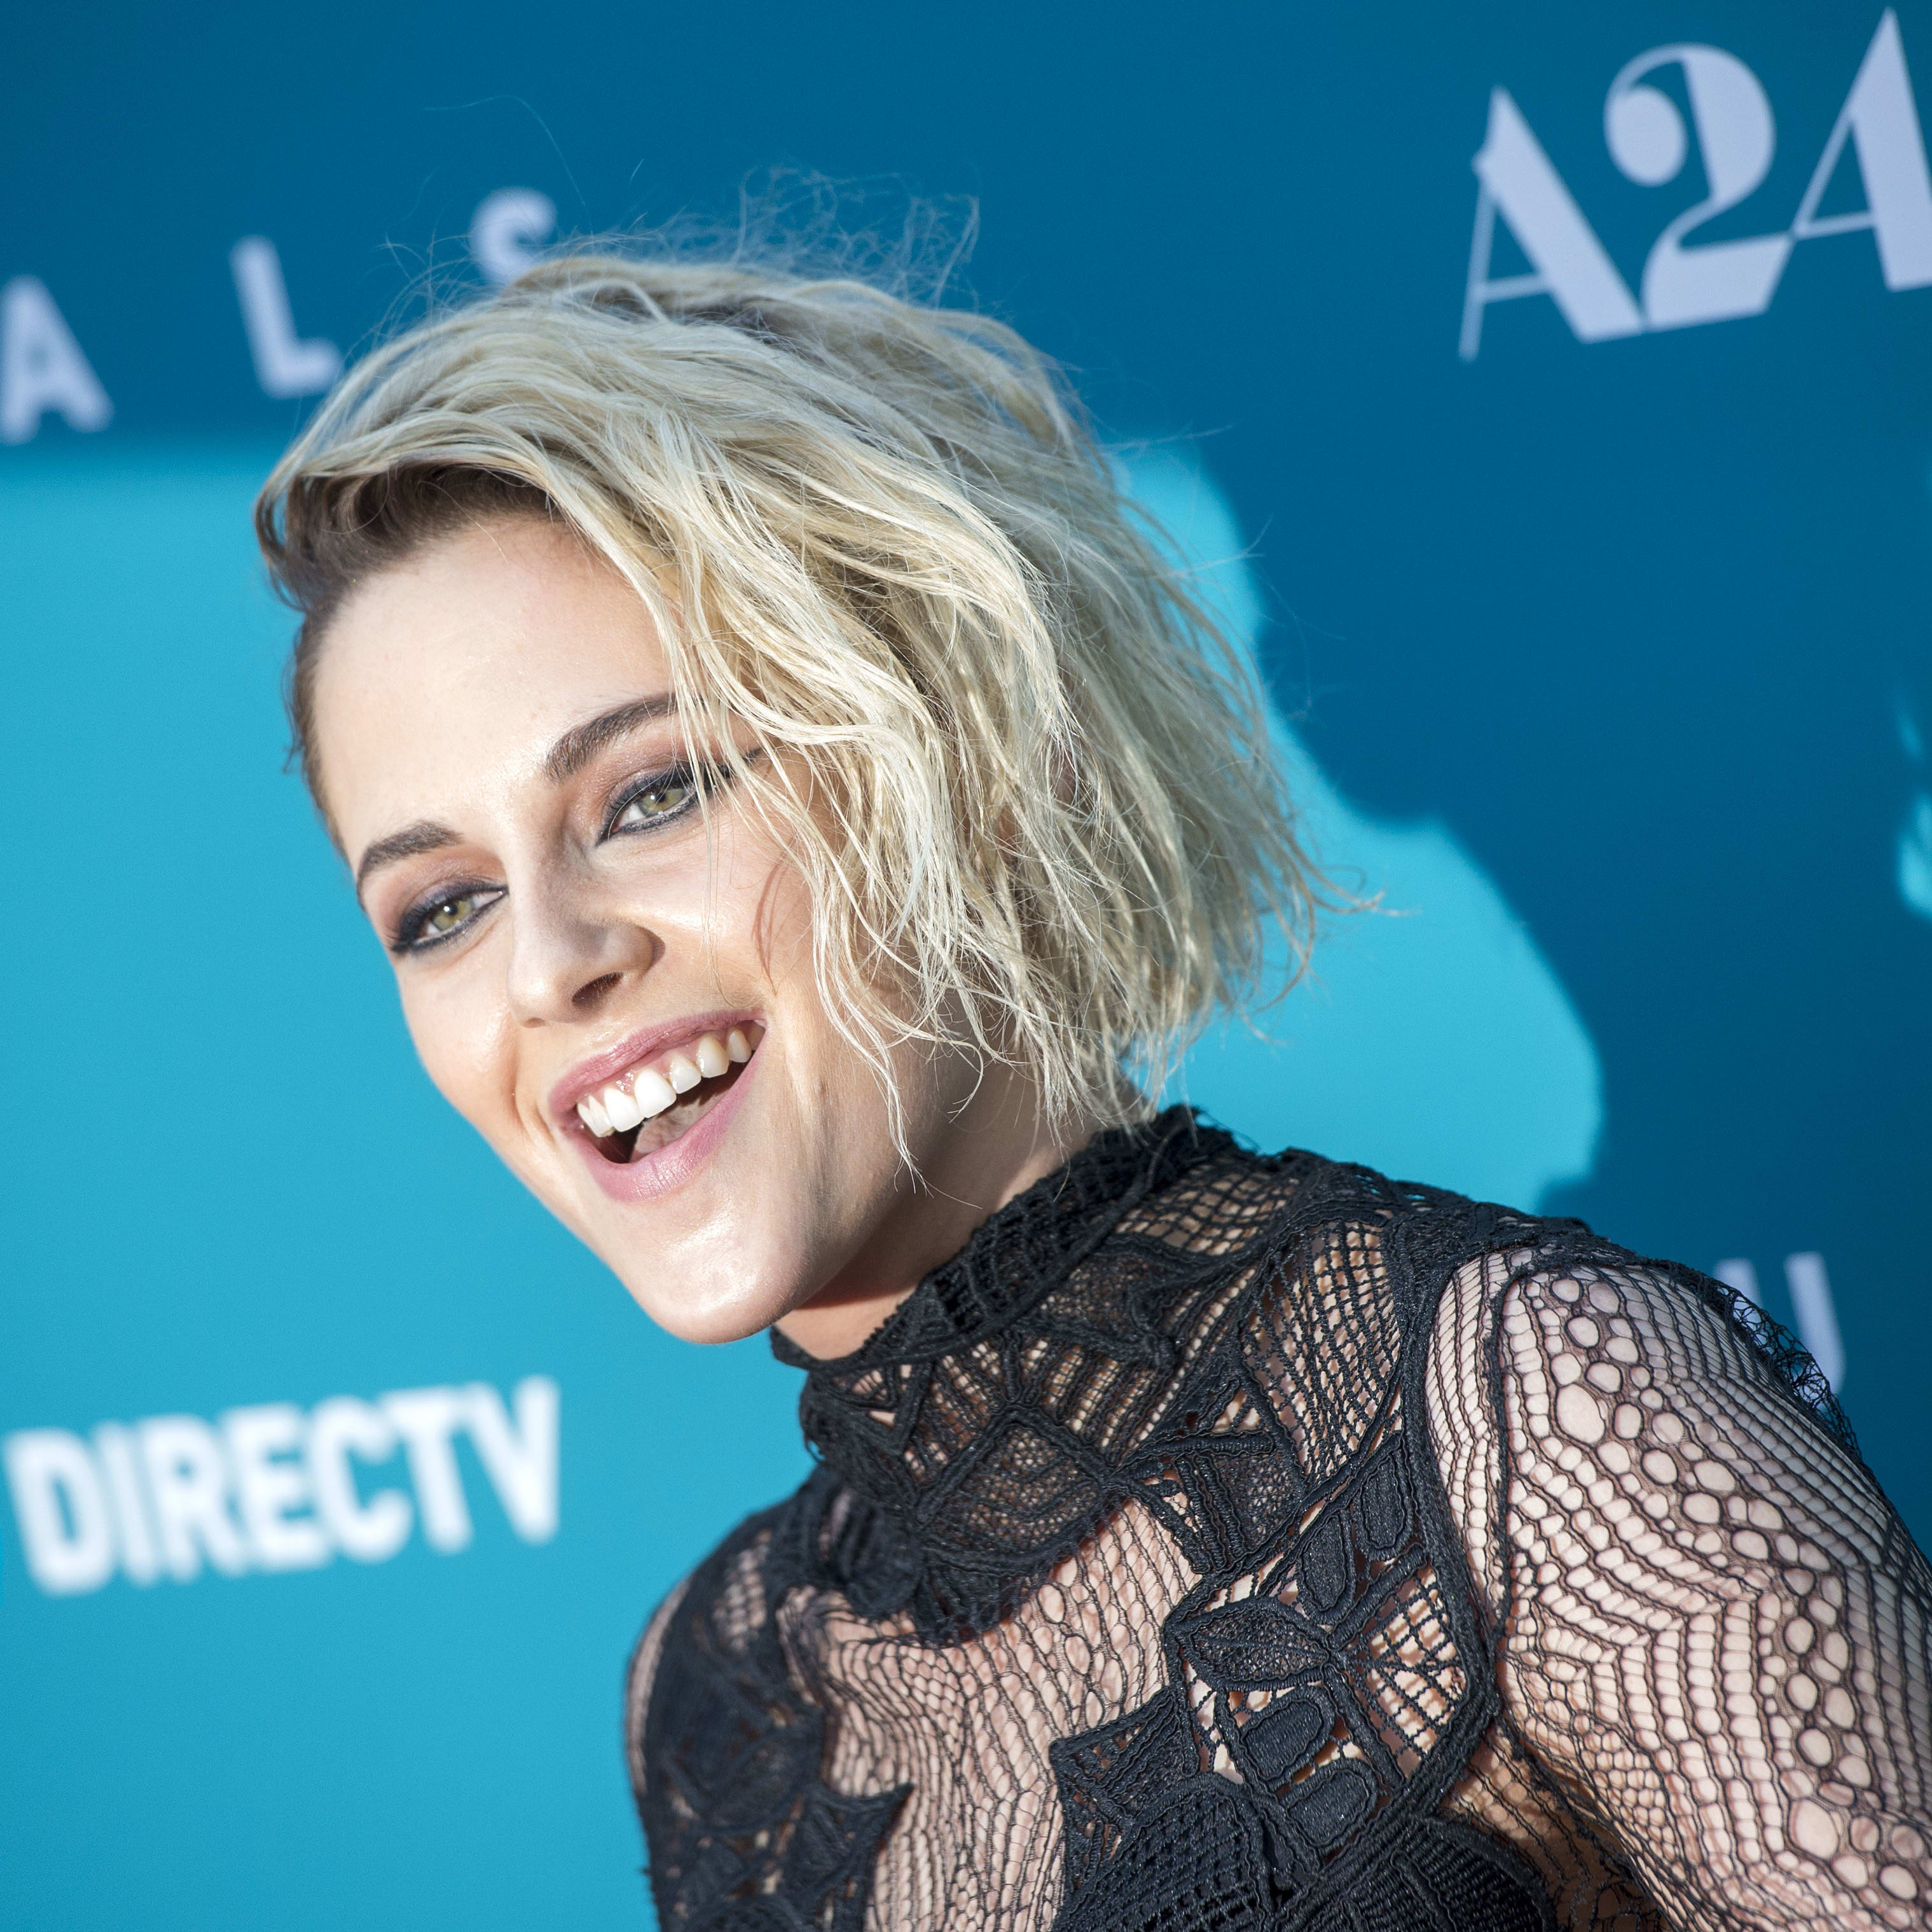 Kristen Stewart Goes Blonde Shaves Head The Hollywood Gossip